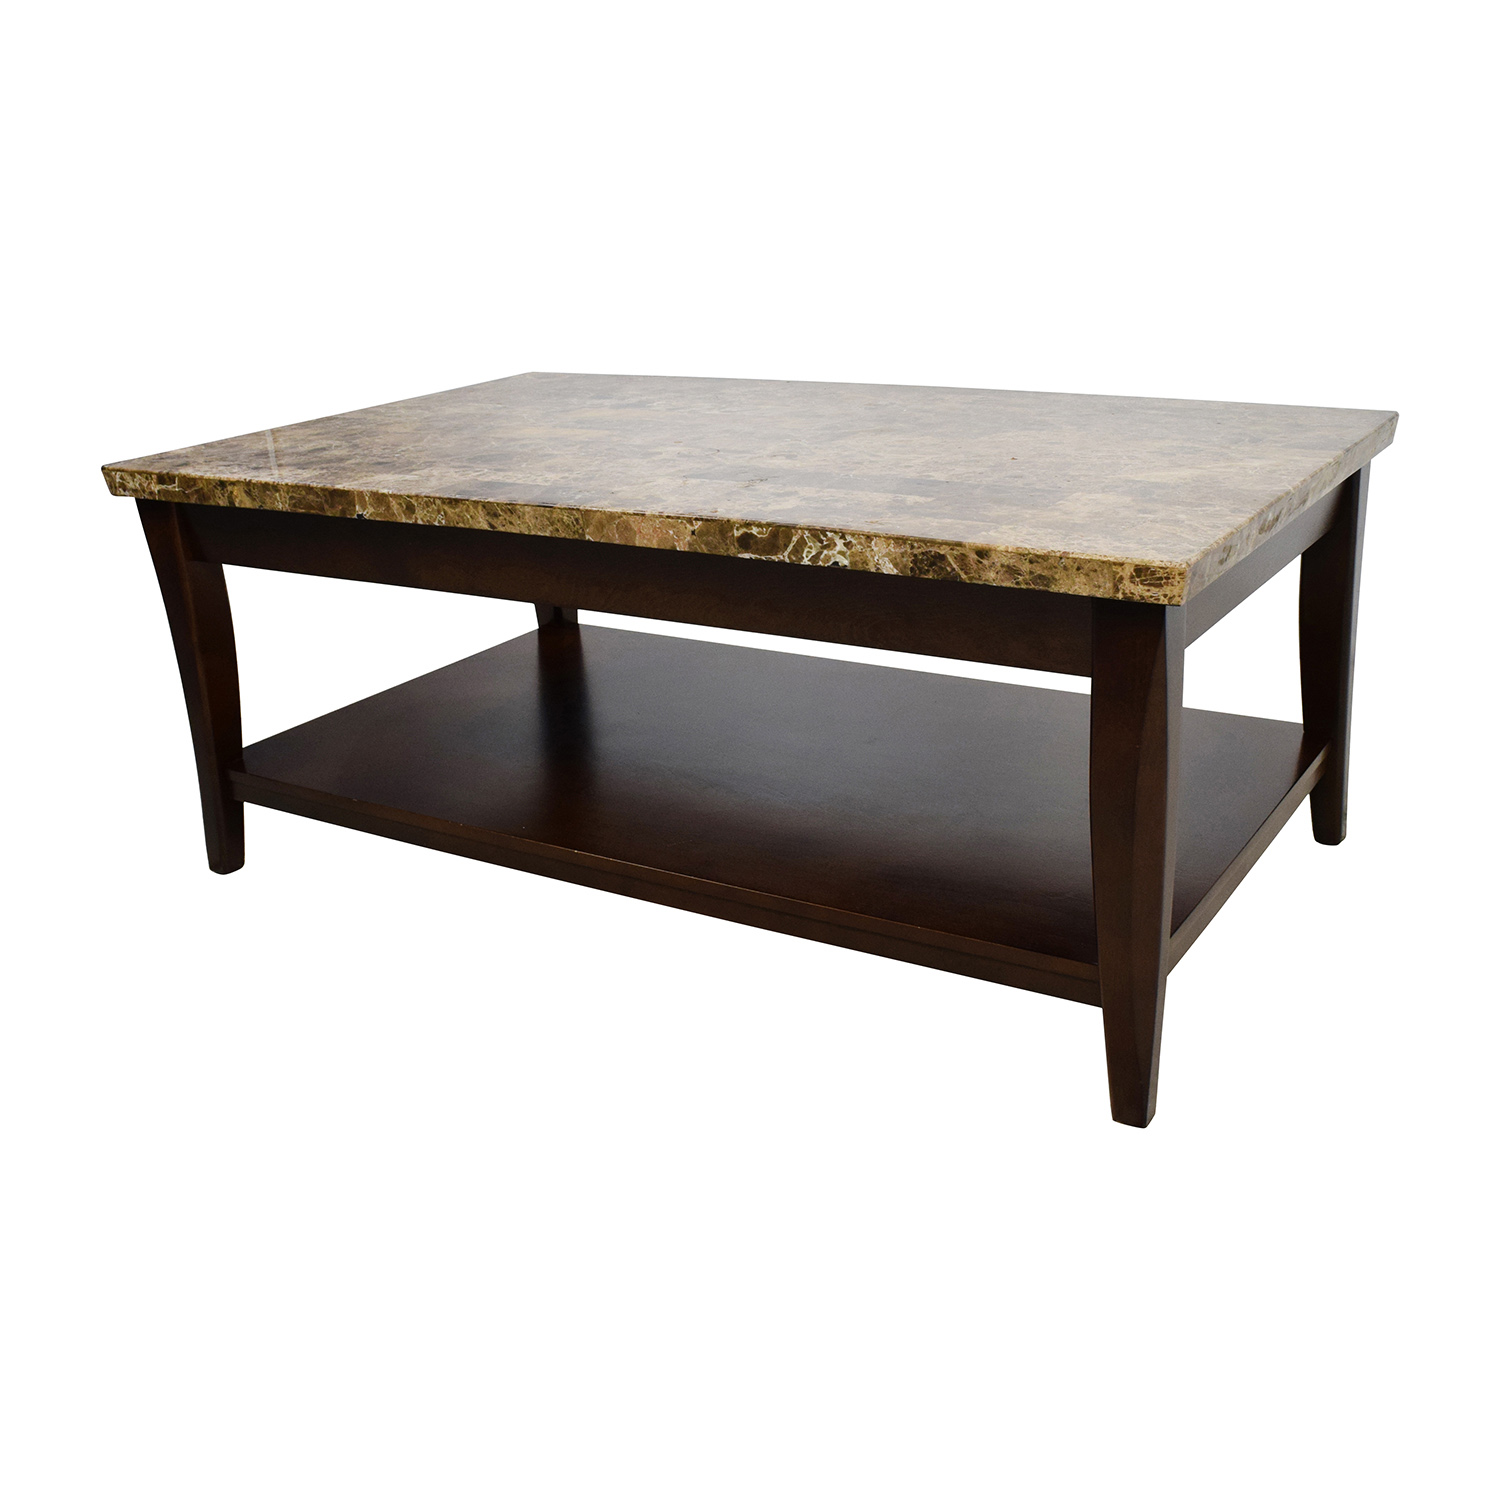 71 Off Marble And Wood Coffee Table Tables